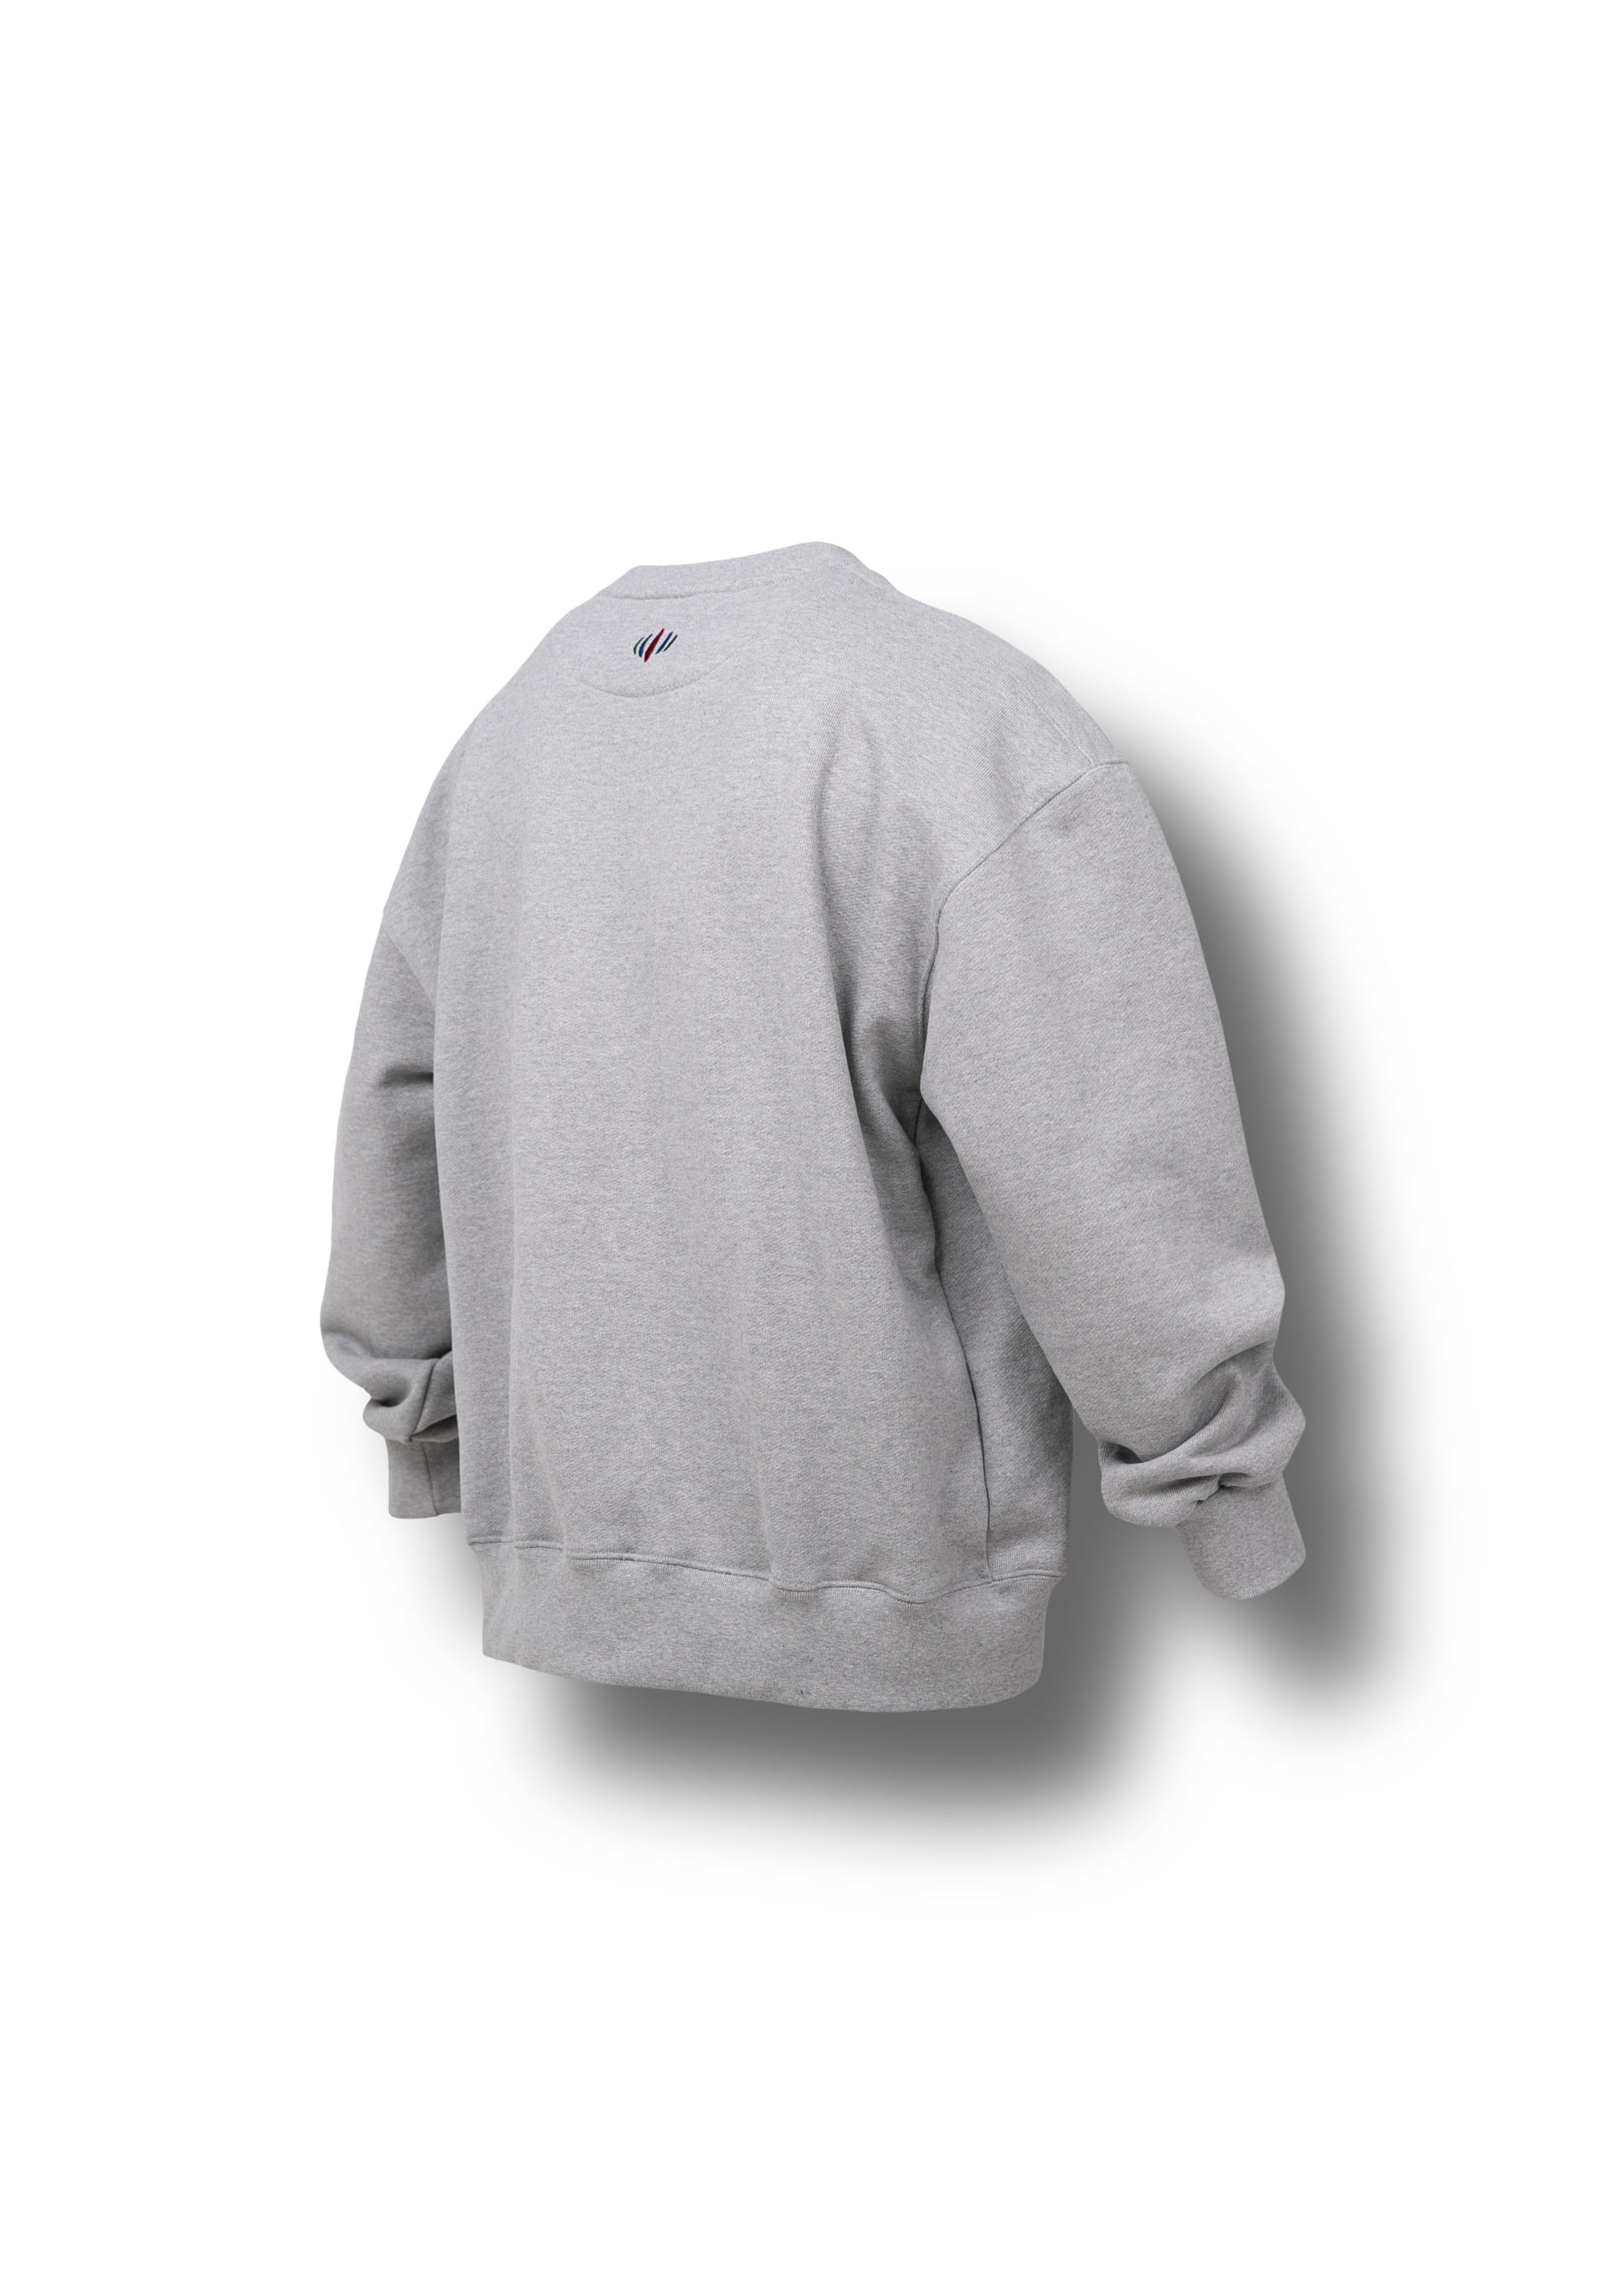 [AG] Native American Embroidery Sweat Shirts - Grey